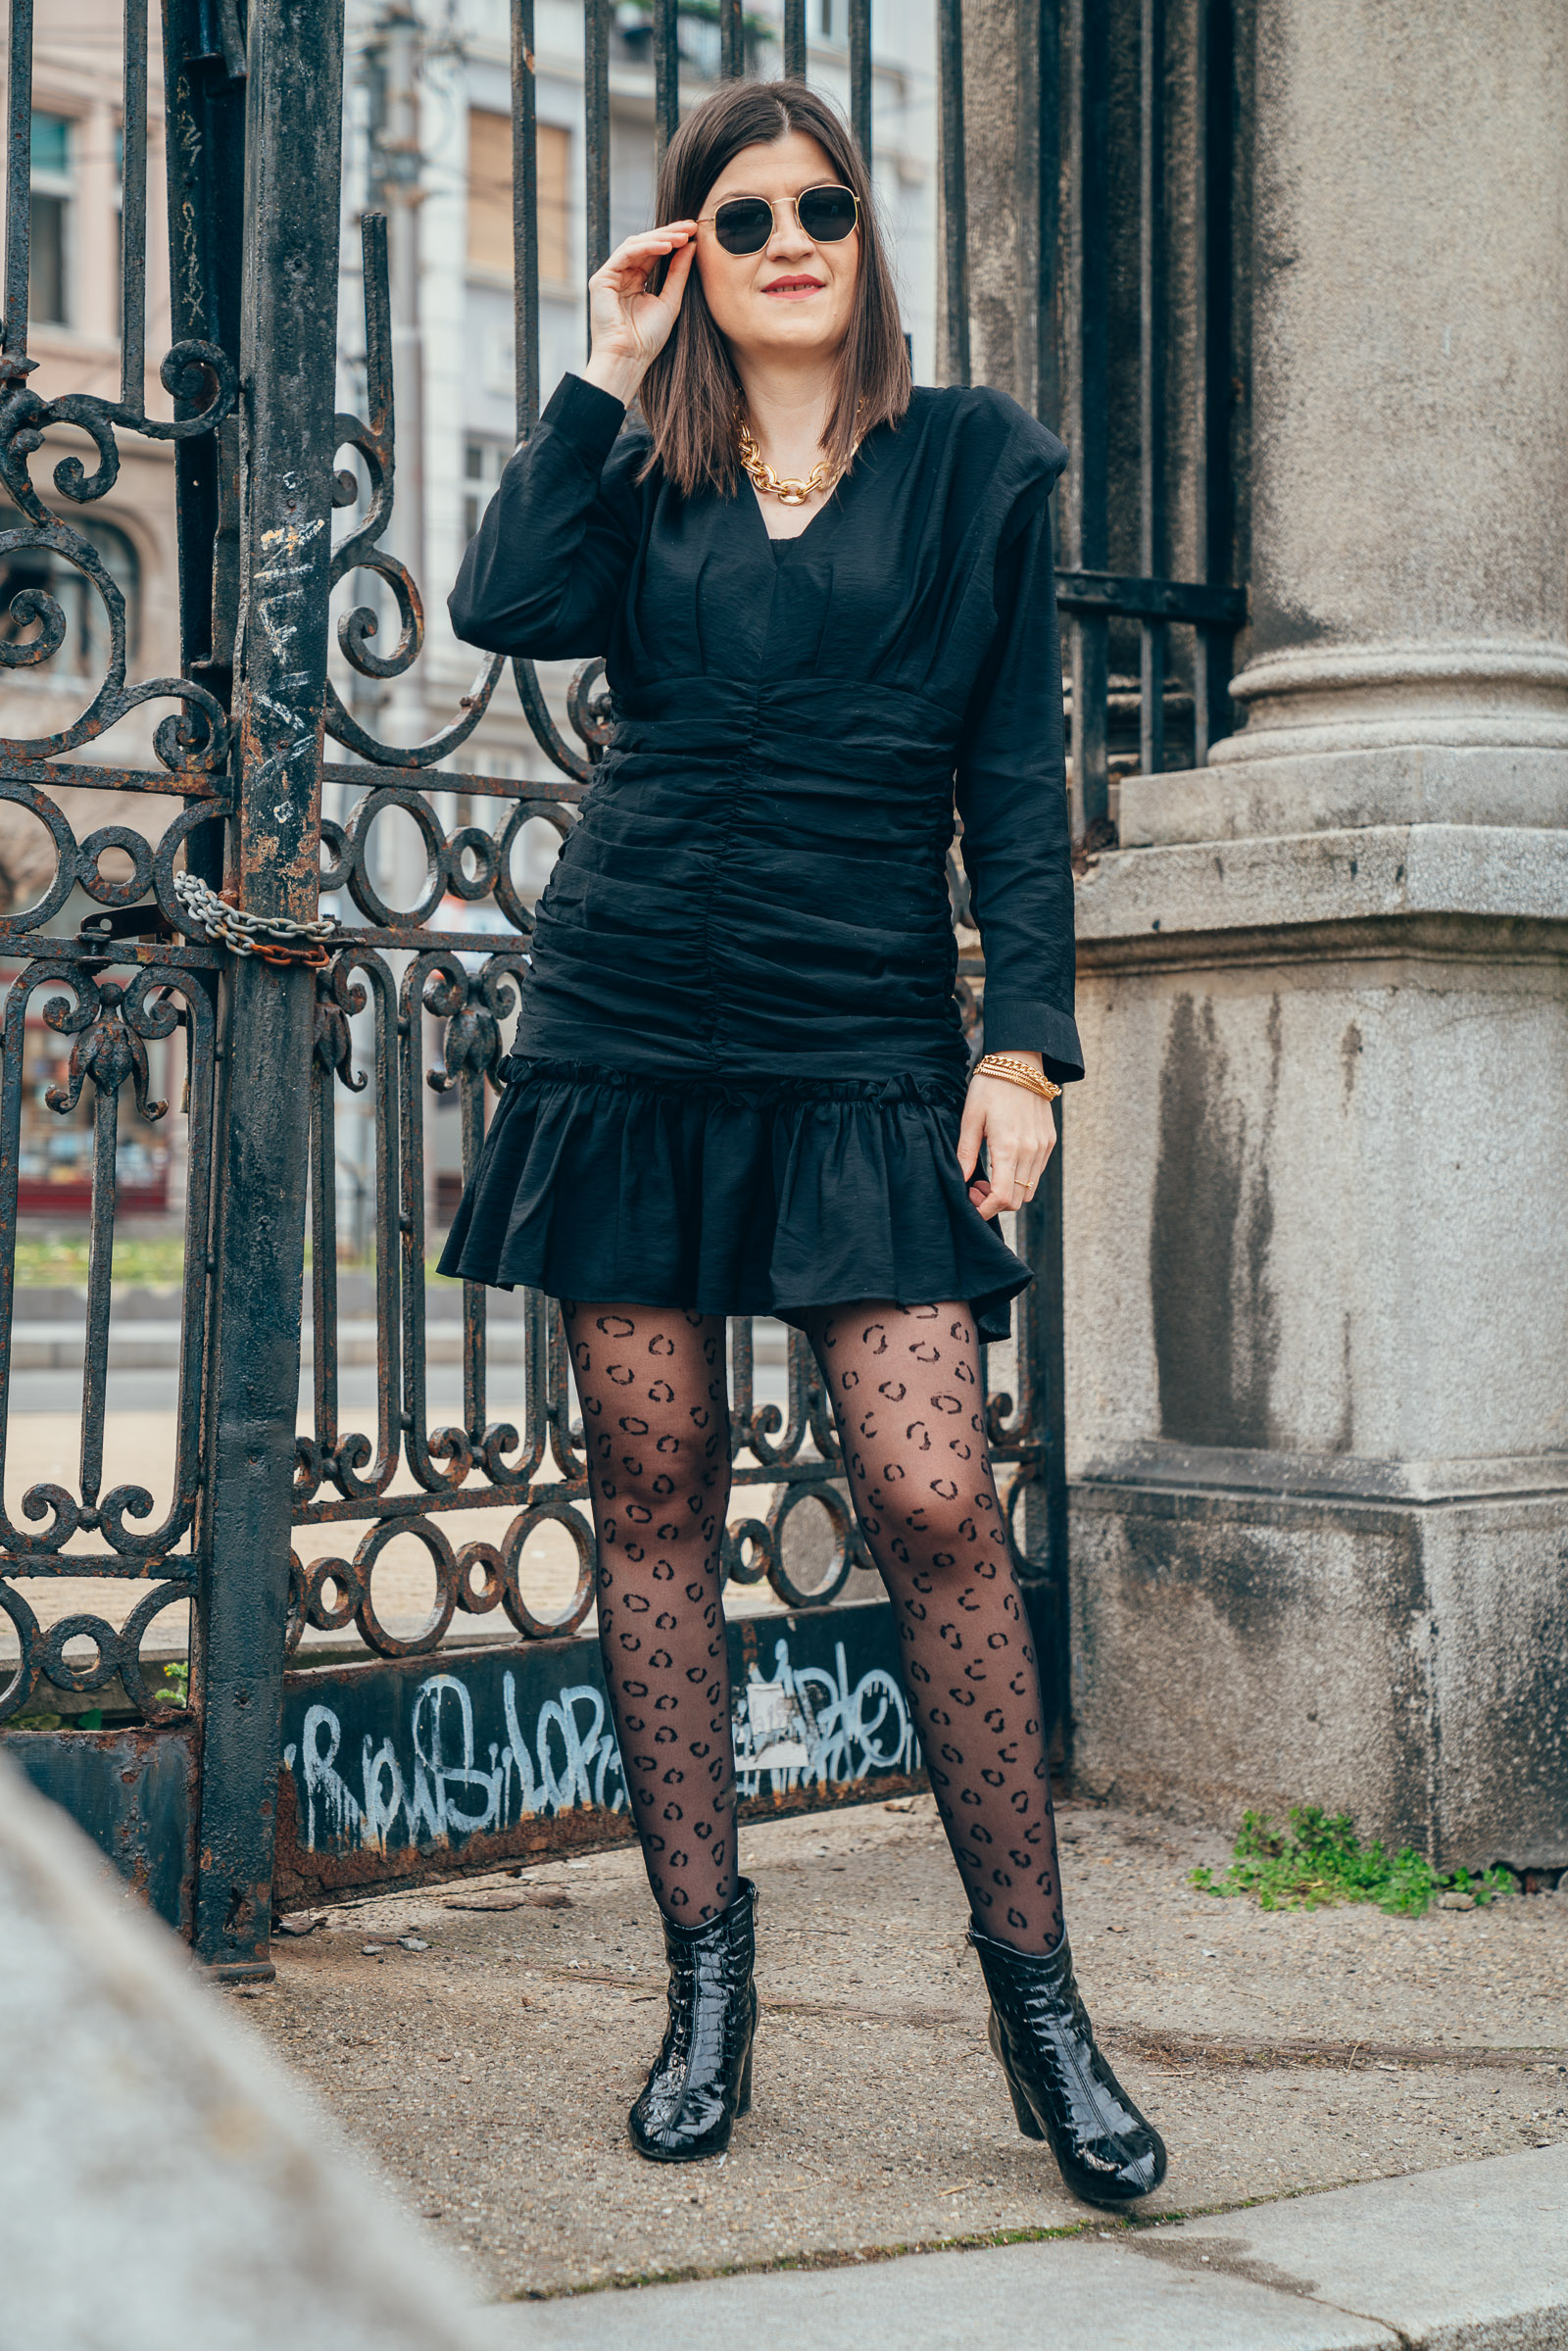 lbd and leopard tights